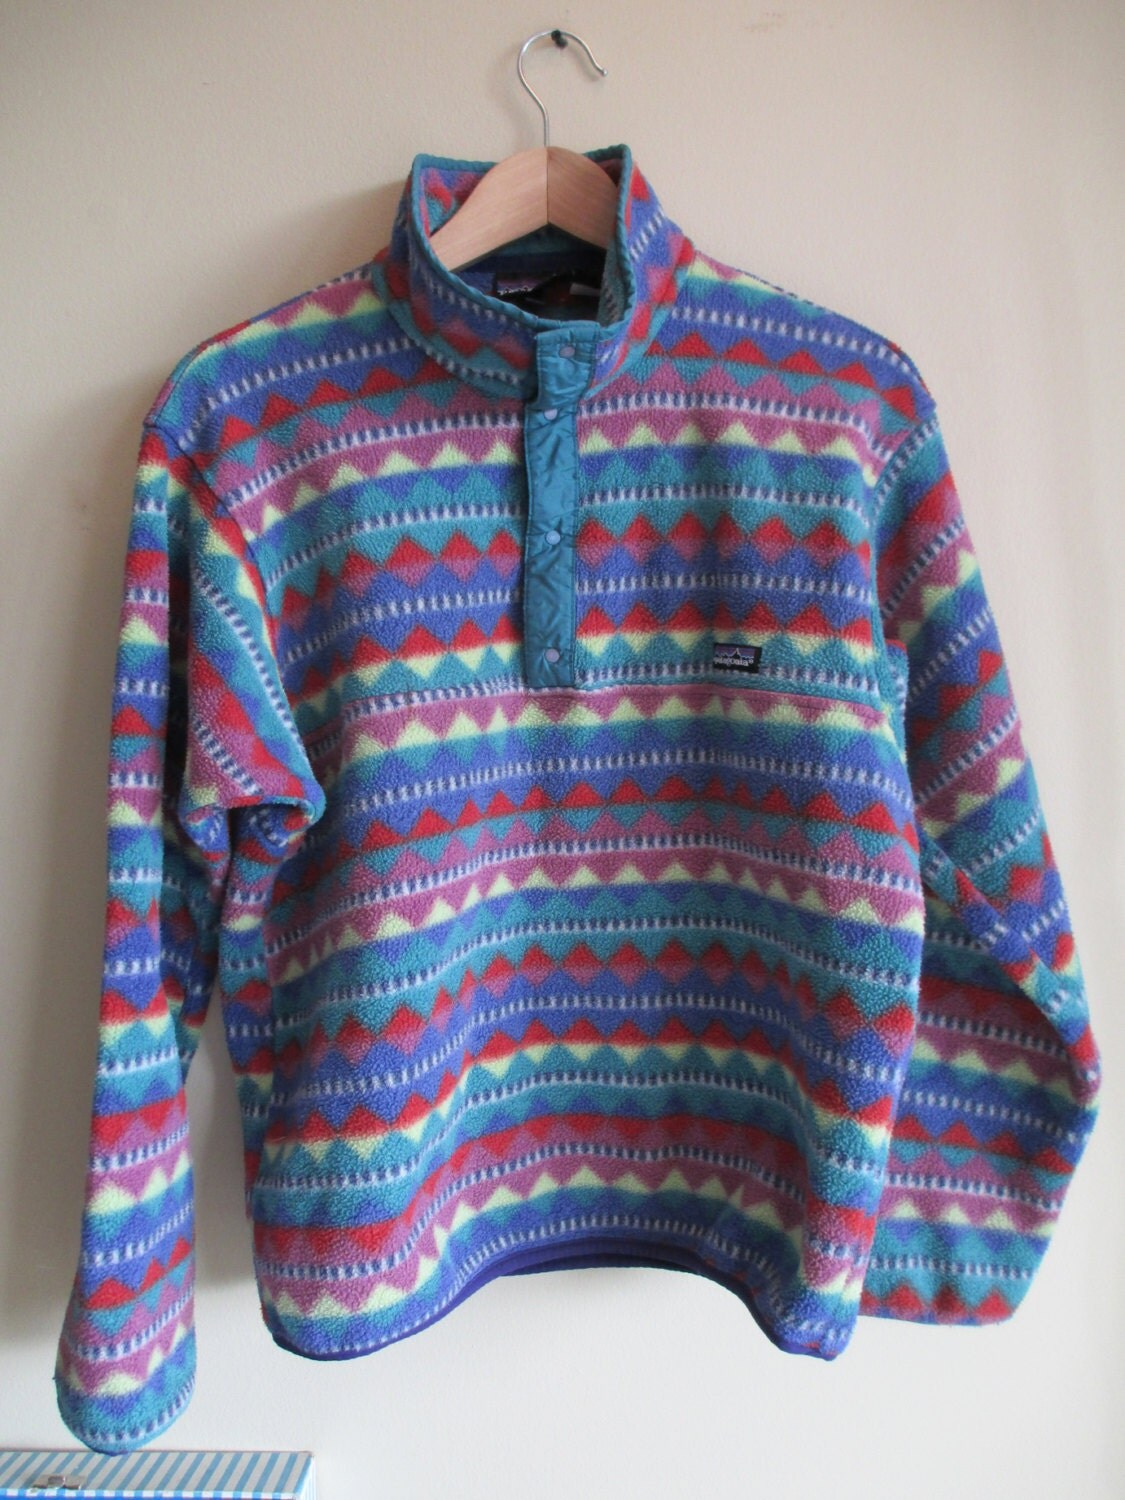 Patagonia Pullover Rare Vintage Patagonia Aztec Tribal Print Pullover Fleece